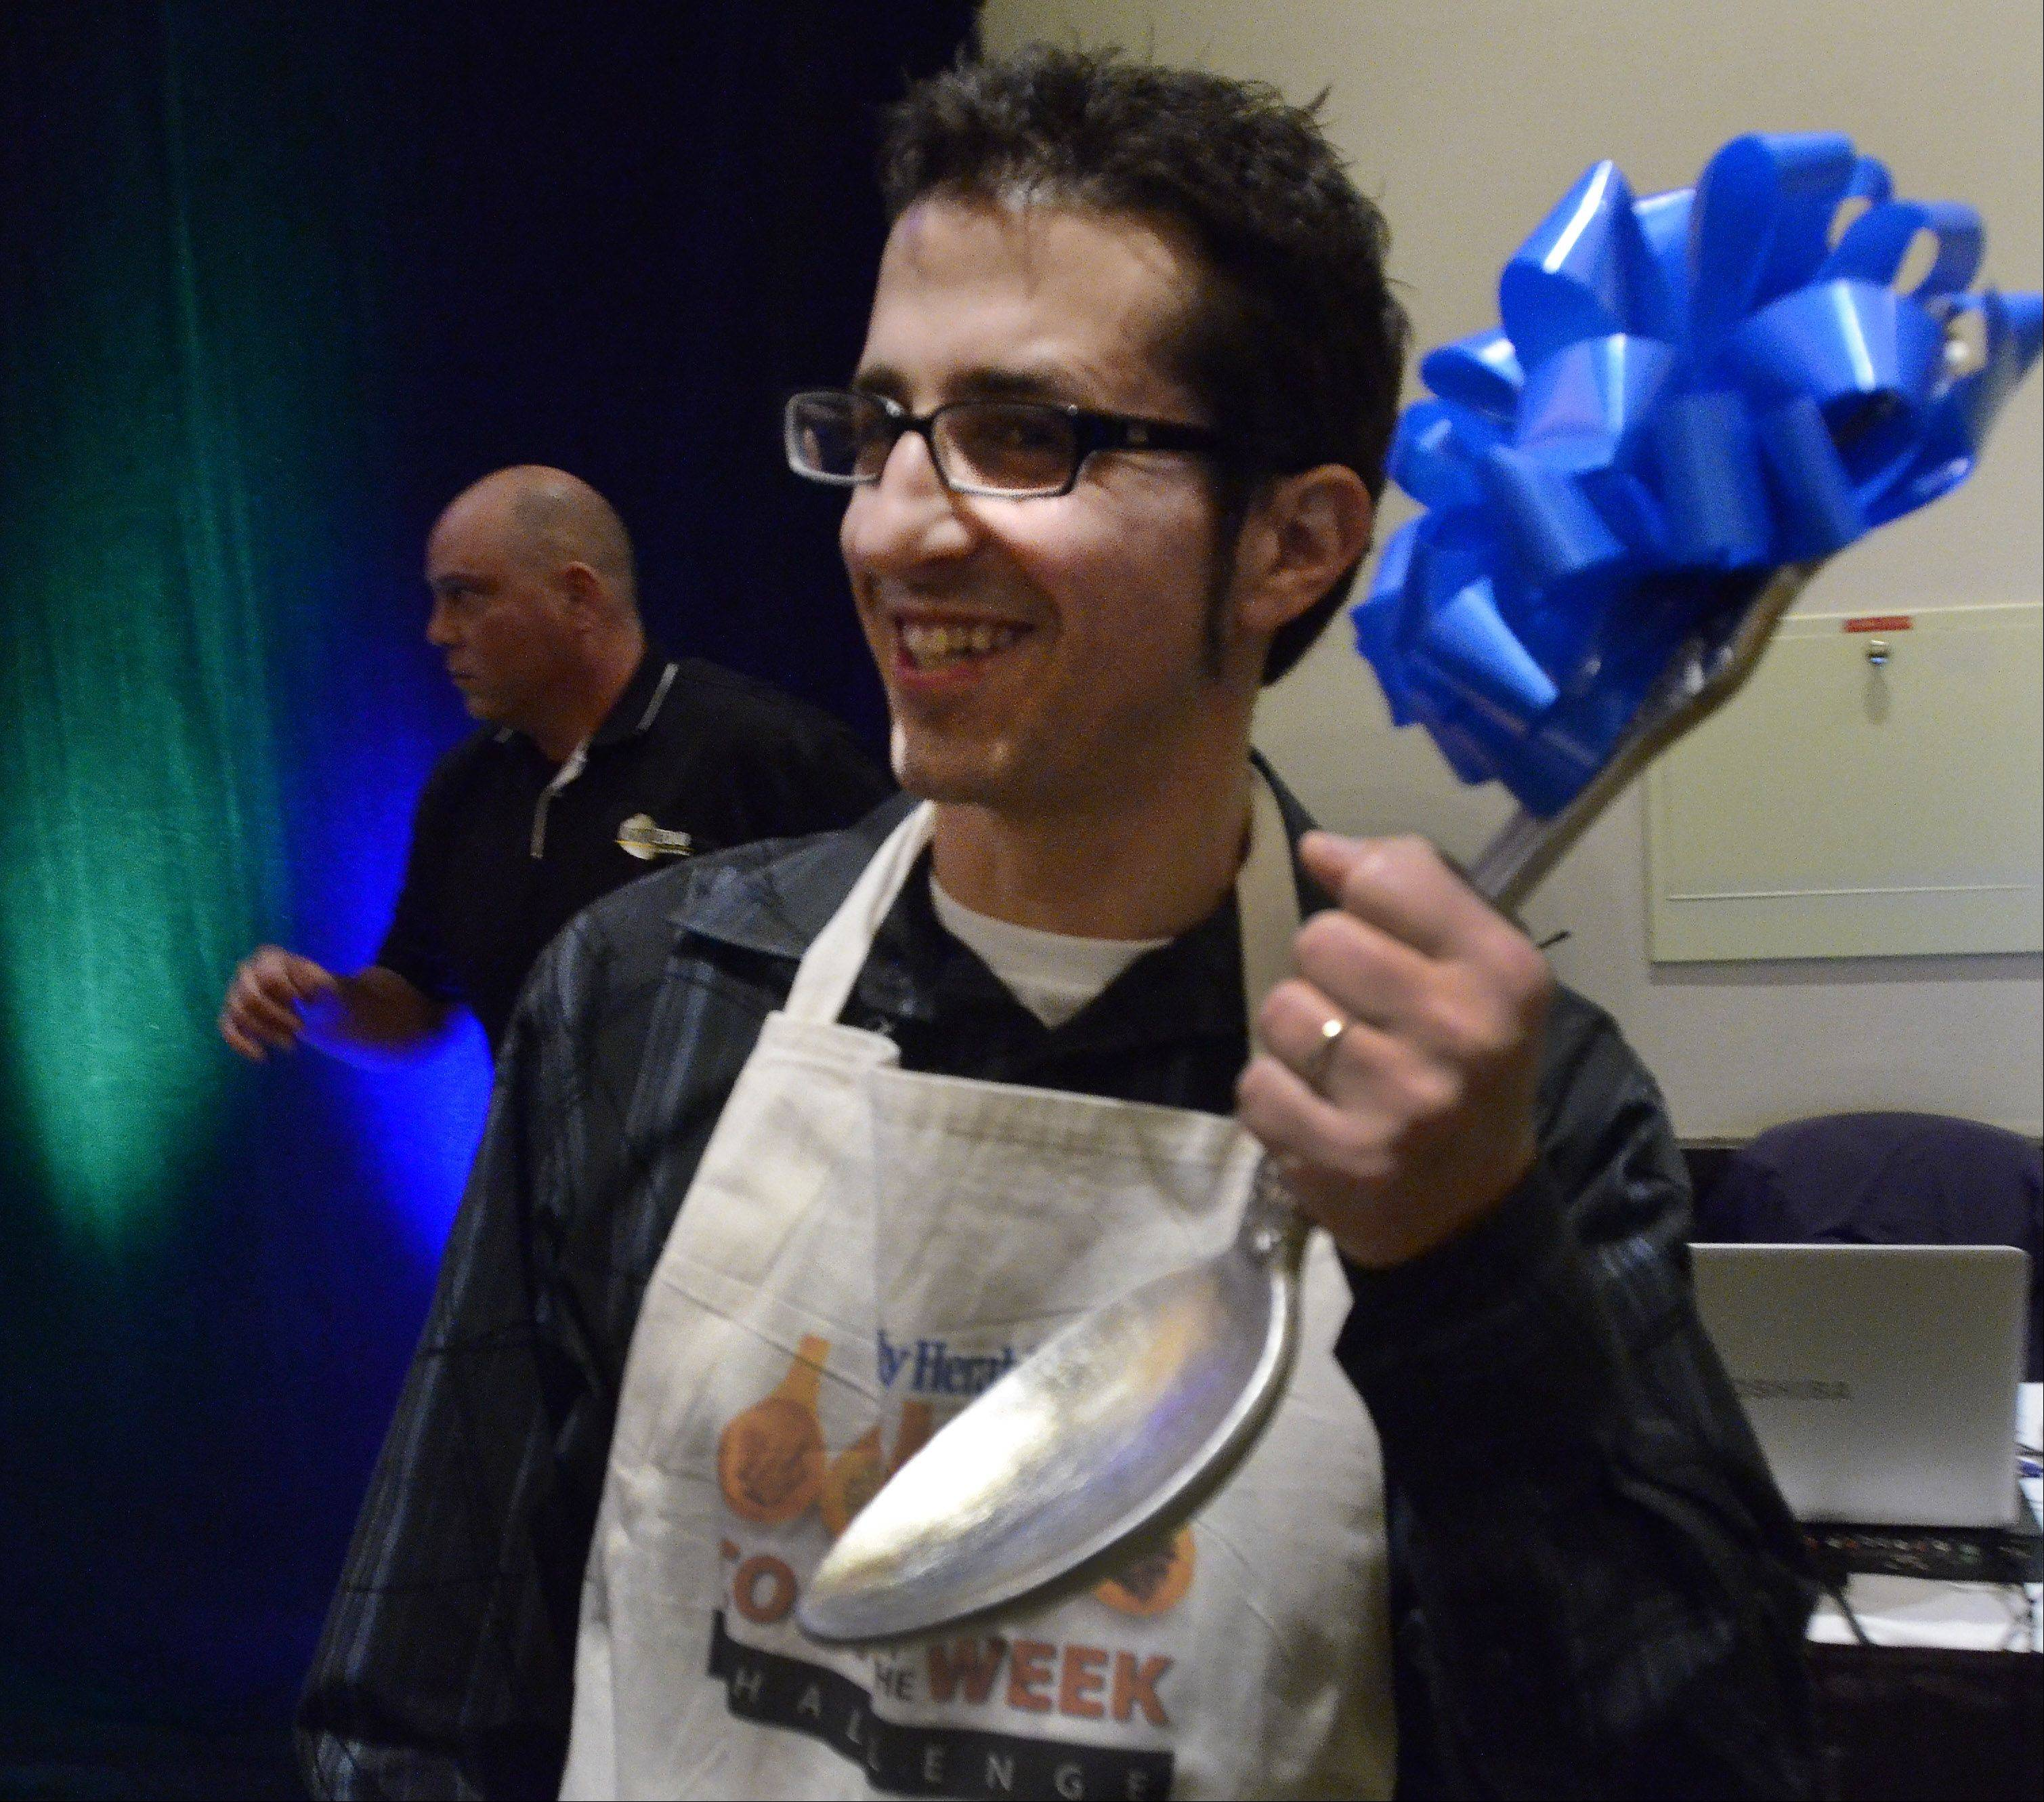 Michael Pennisi of Carpentersville is named Cook of the year 2012 after winning the Cook of the Week Challenge Cookoff with his dish Salmon Saute with spicy sweet potatoes and brussels slaw.